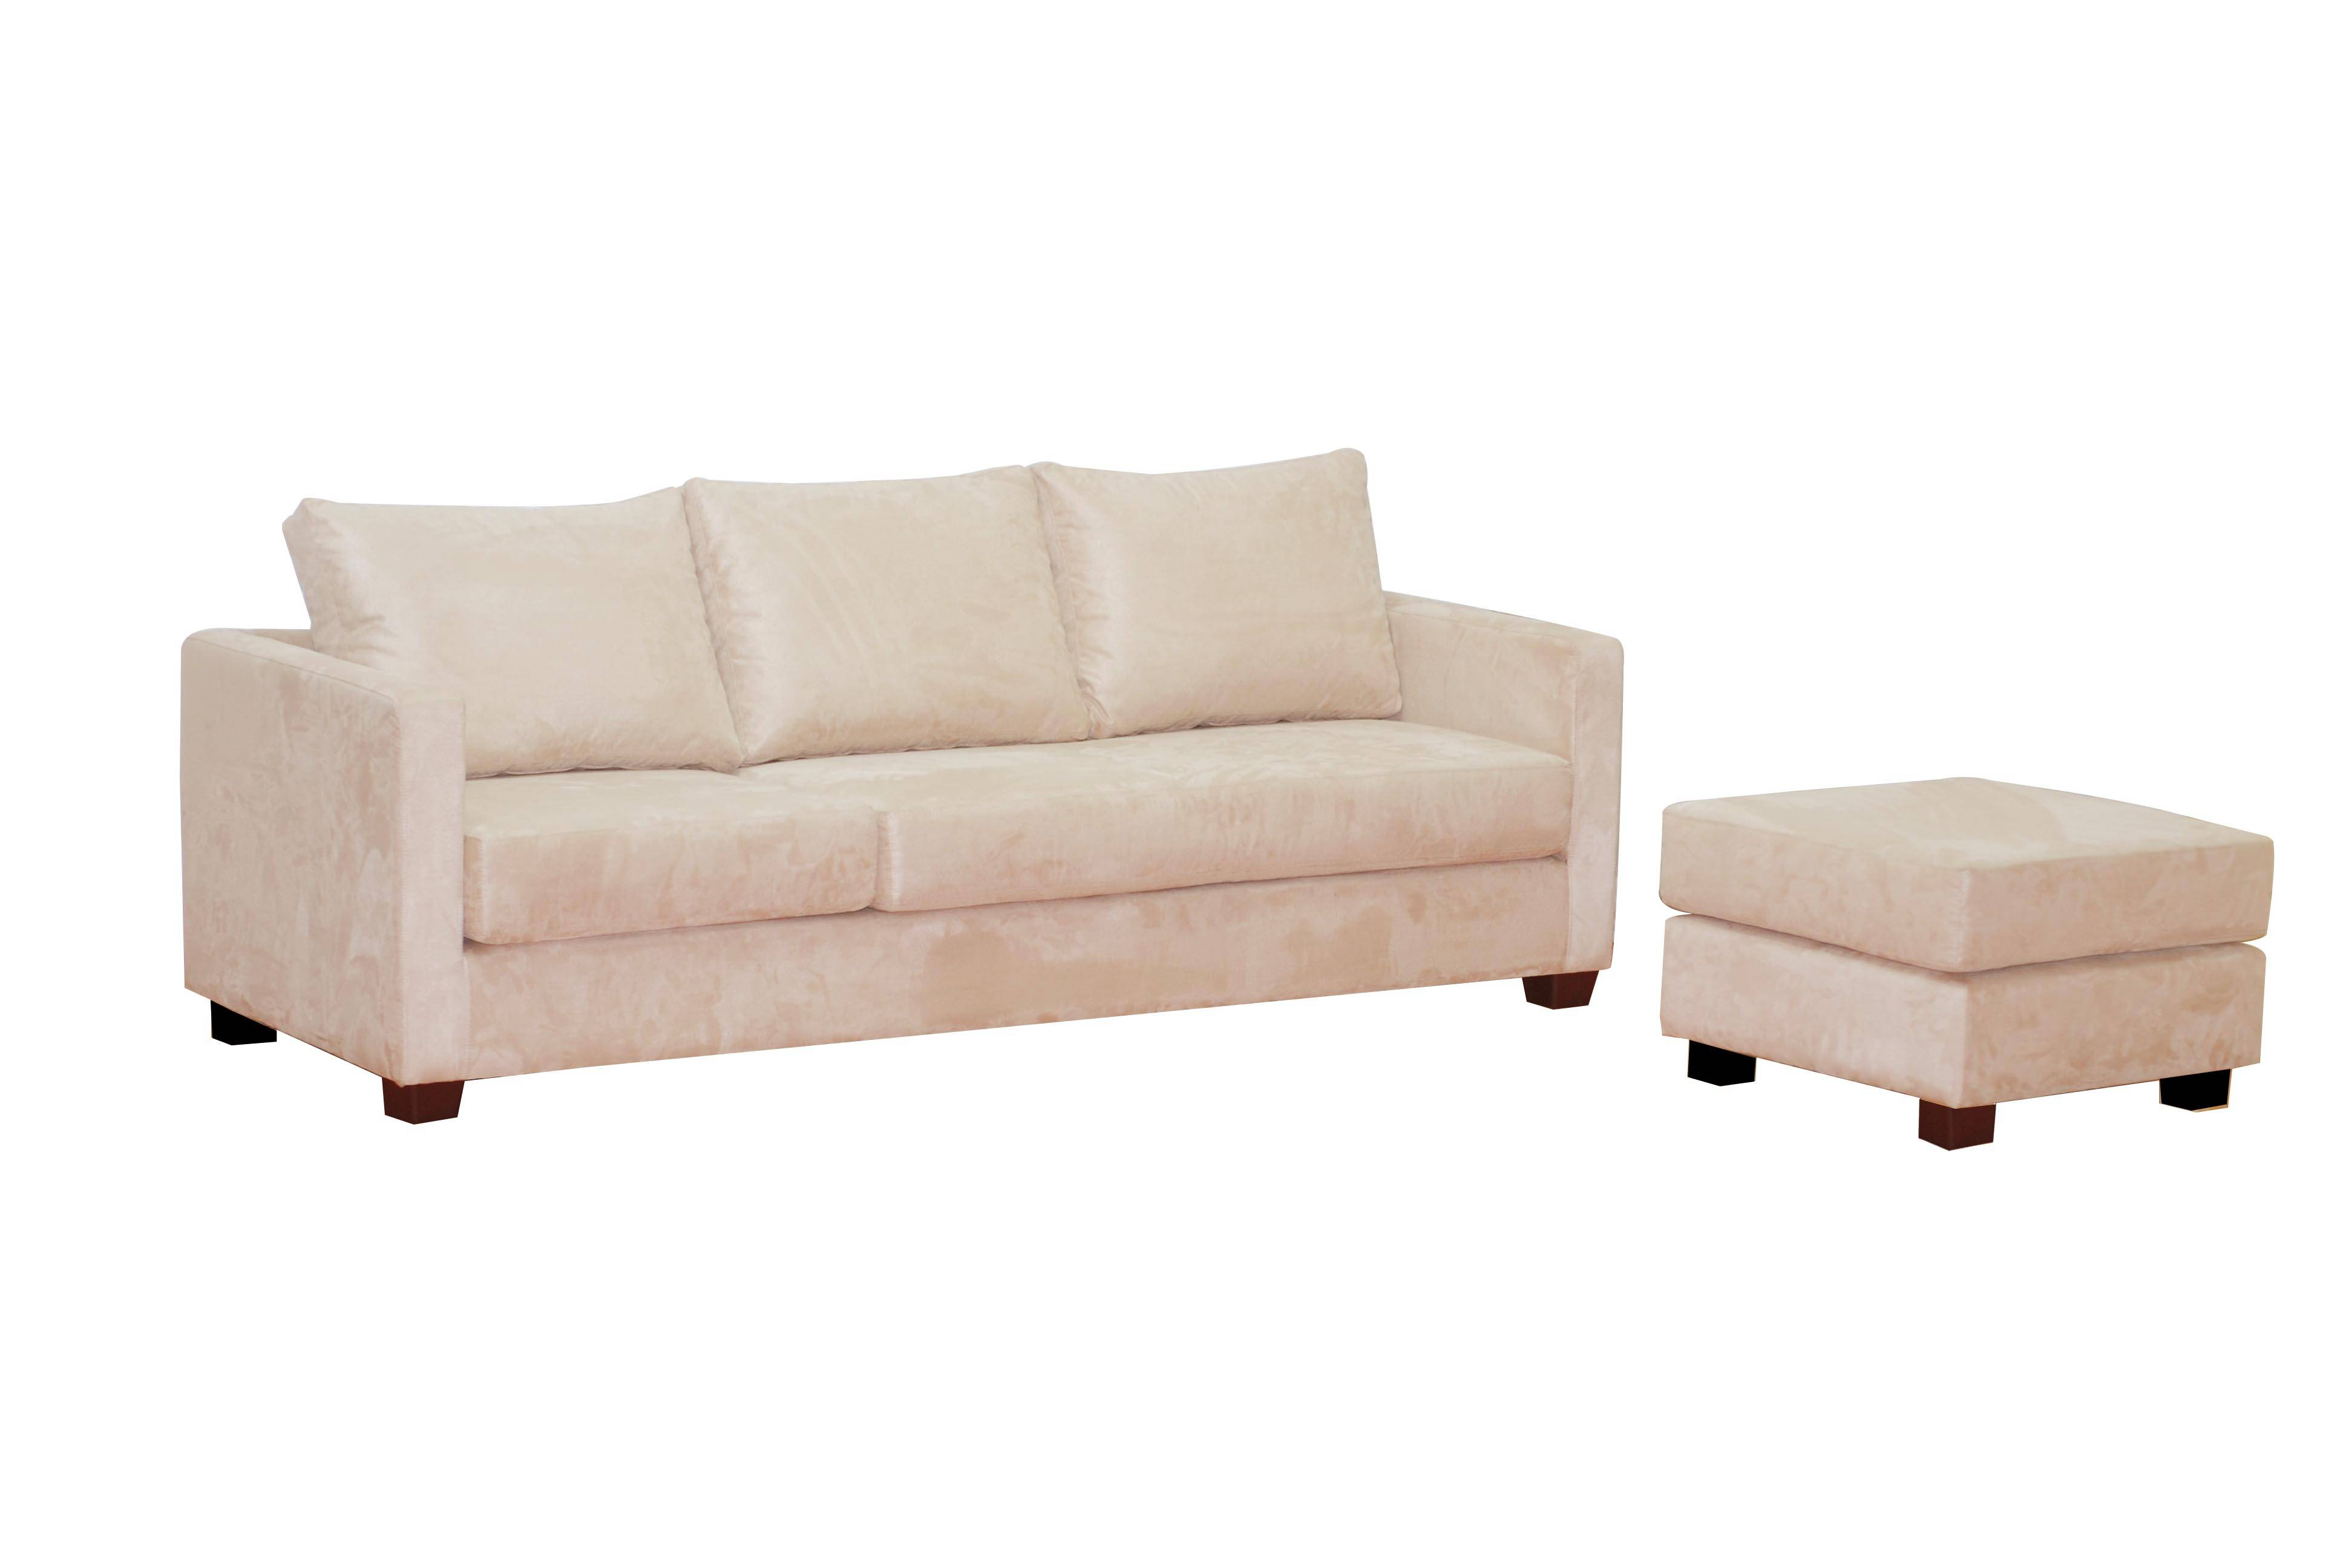 FS-20A sectional sofas in fabric